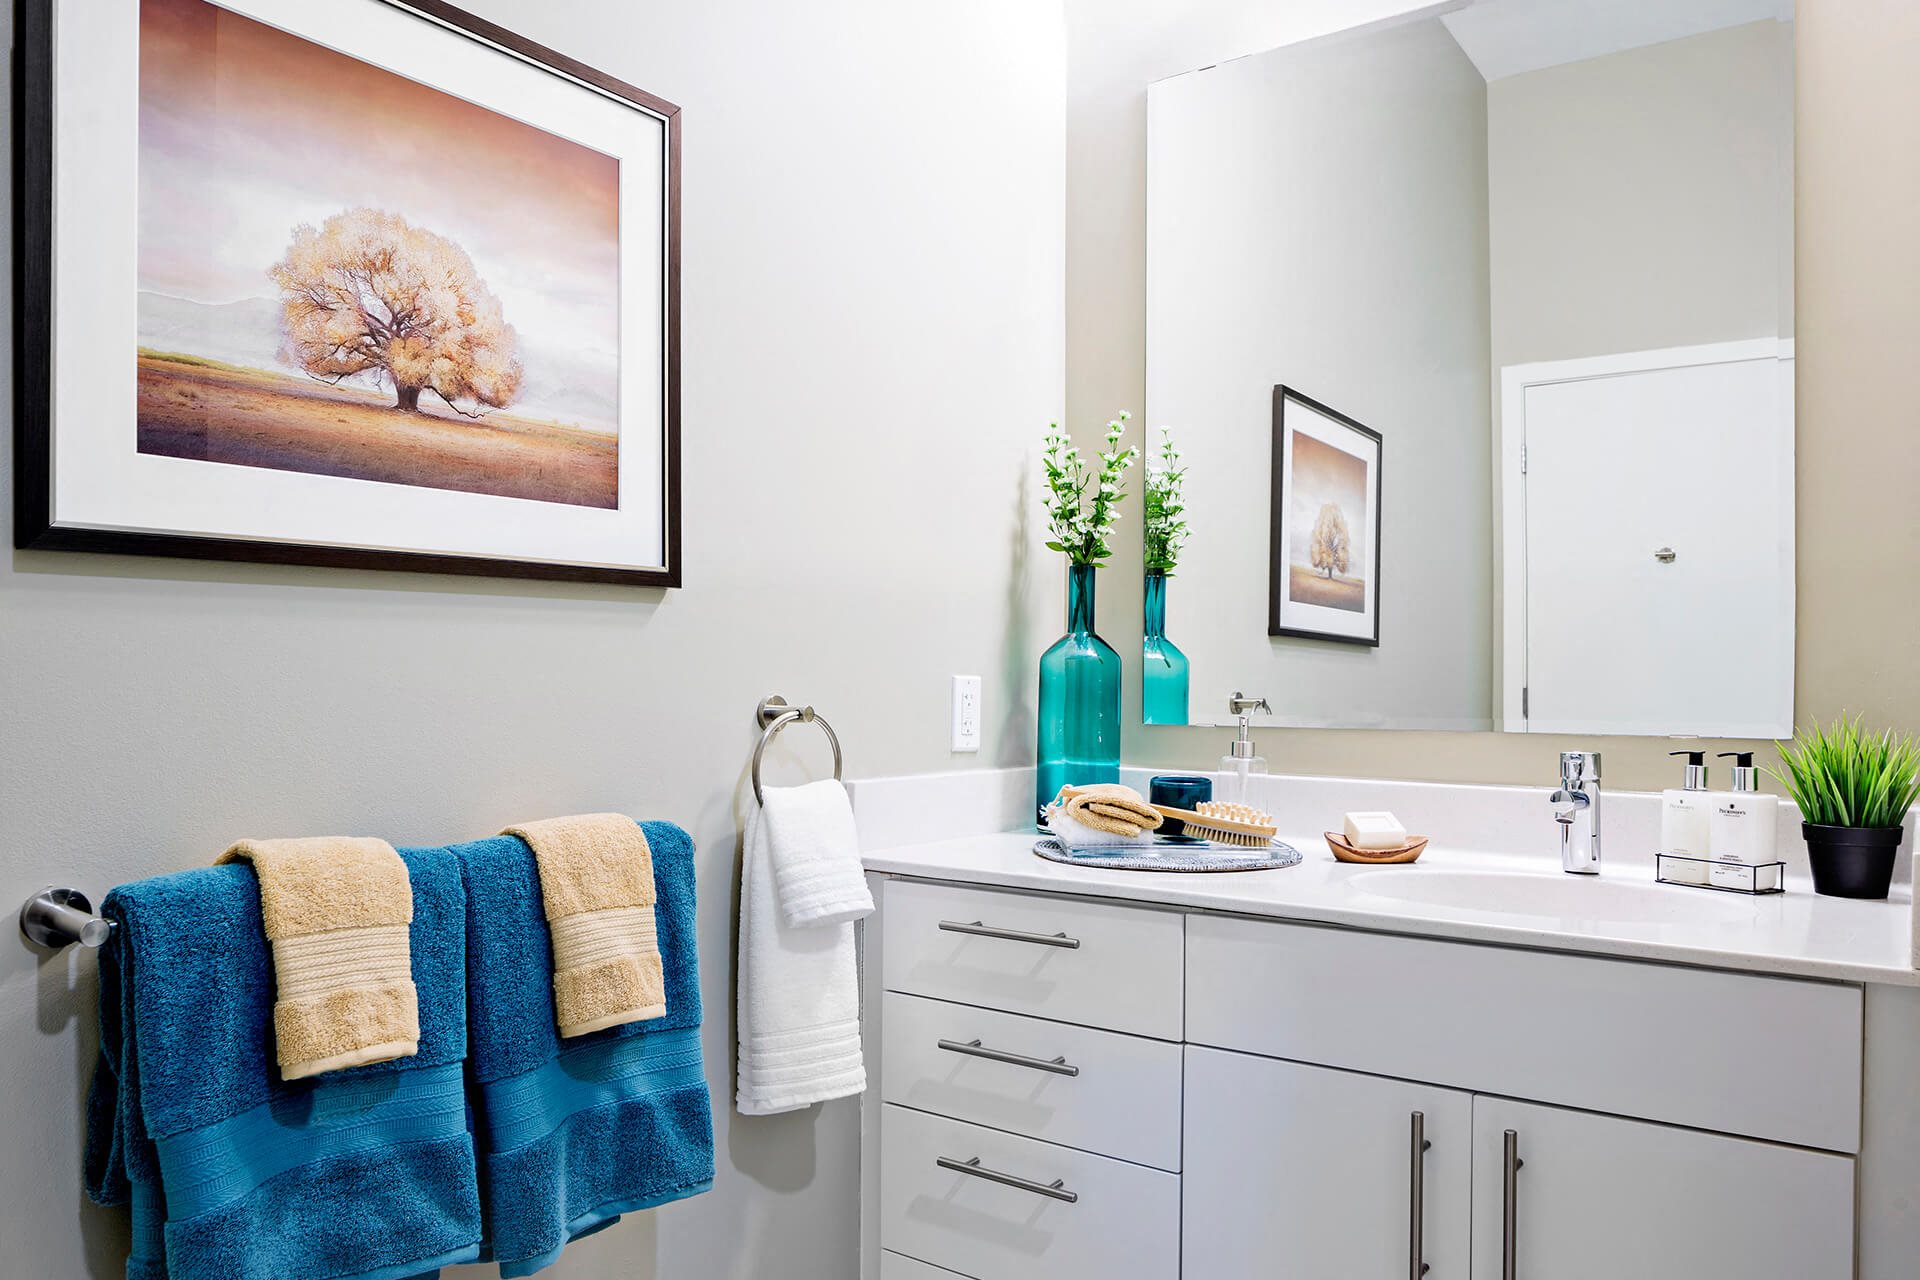 Storage Space in Bathrooms at Waterside Place by Windsor, Boston, Massachusetts